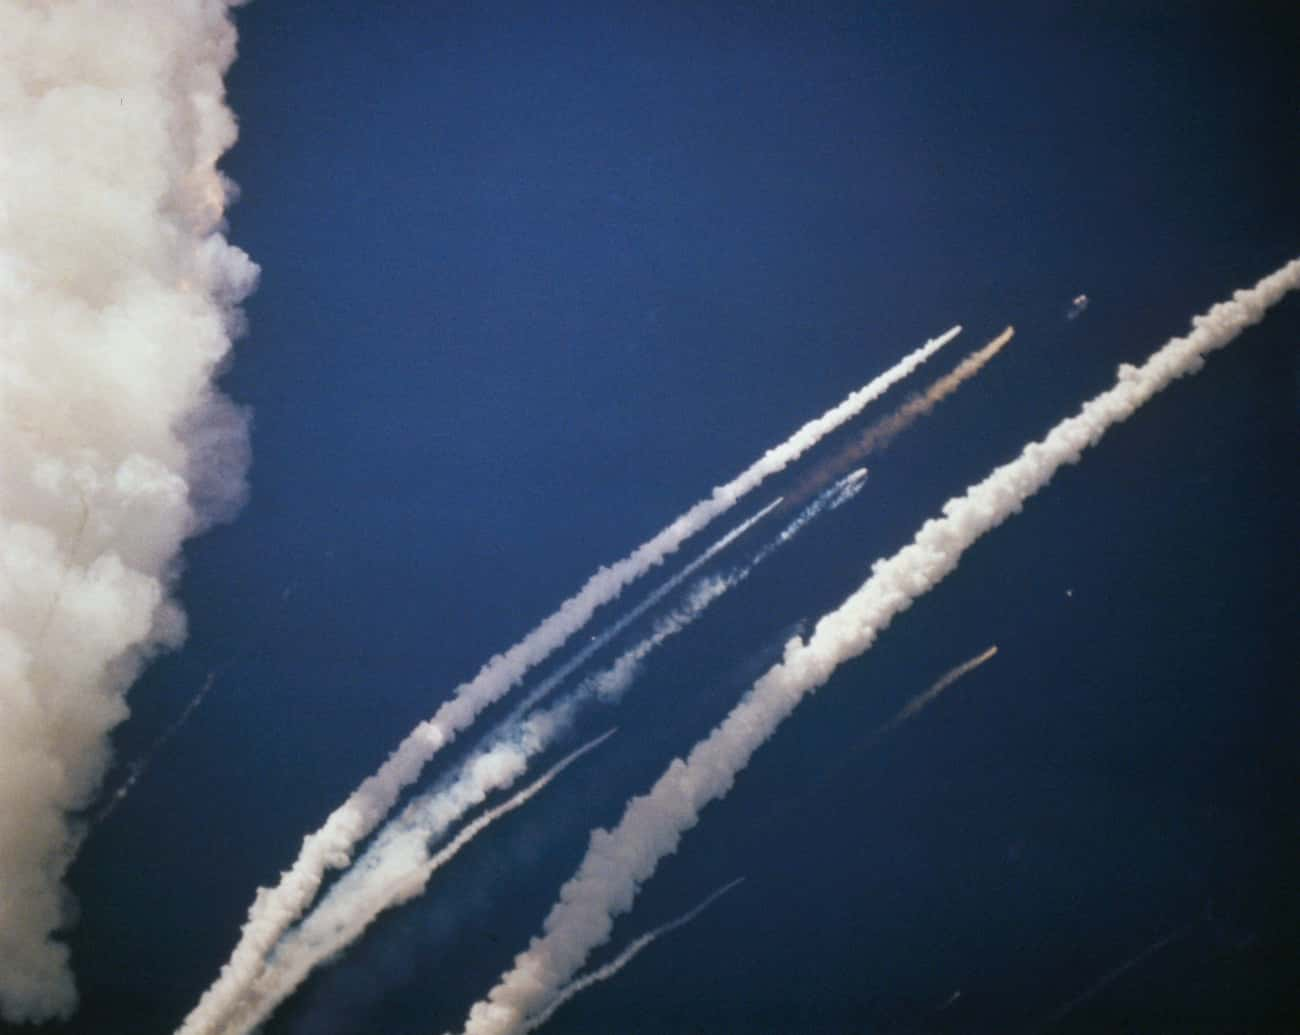 The Failed Rocket Booster Propelled The Cabin Upward Three Miles Before It Lost Momentum And Fell 12 Miles Into The Ocean